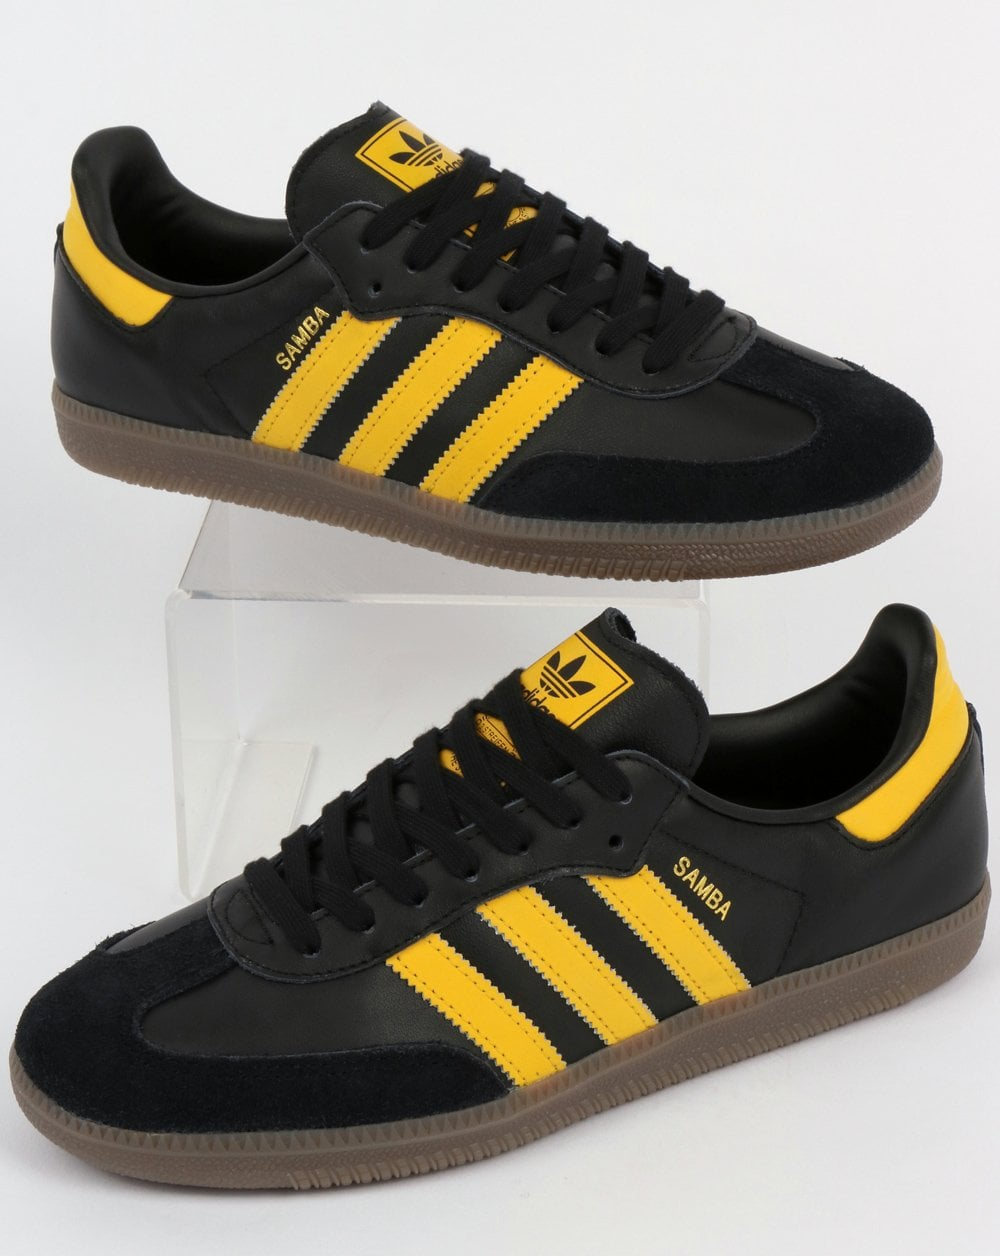 acdaaed5a Adidas Samba OG Trainers Black/Bold Gold,leather,shoes,super